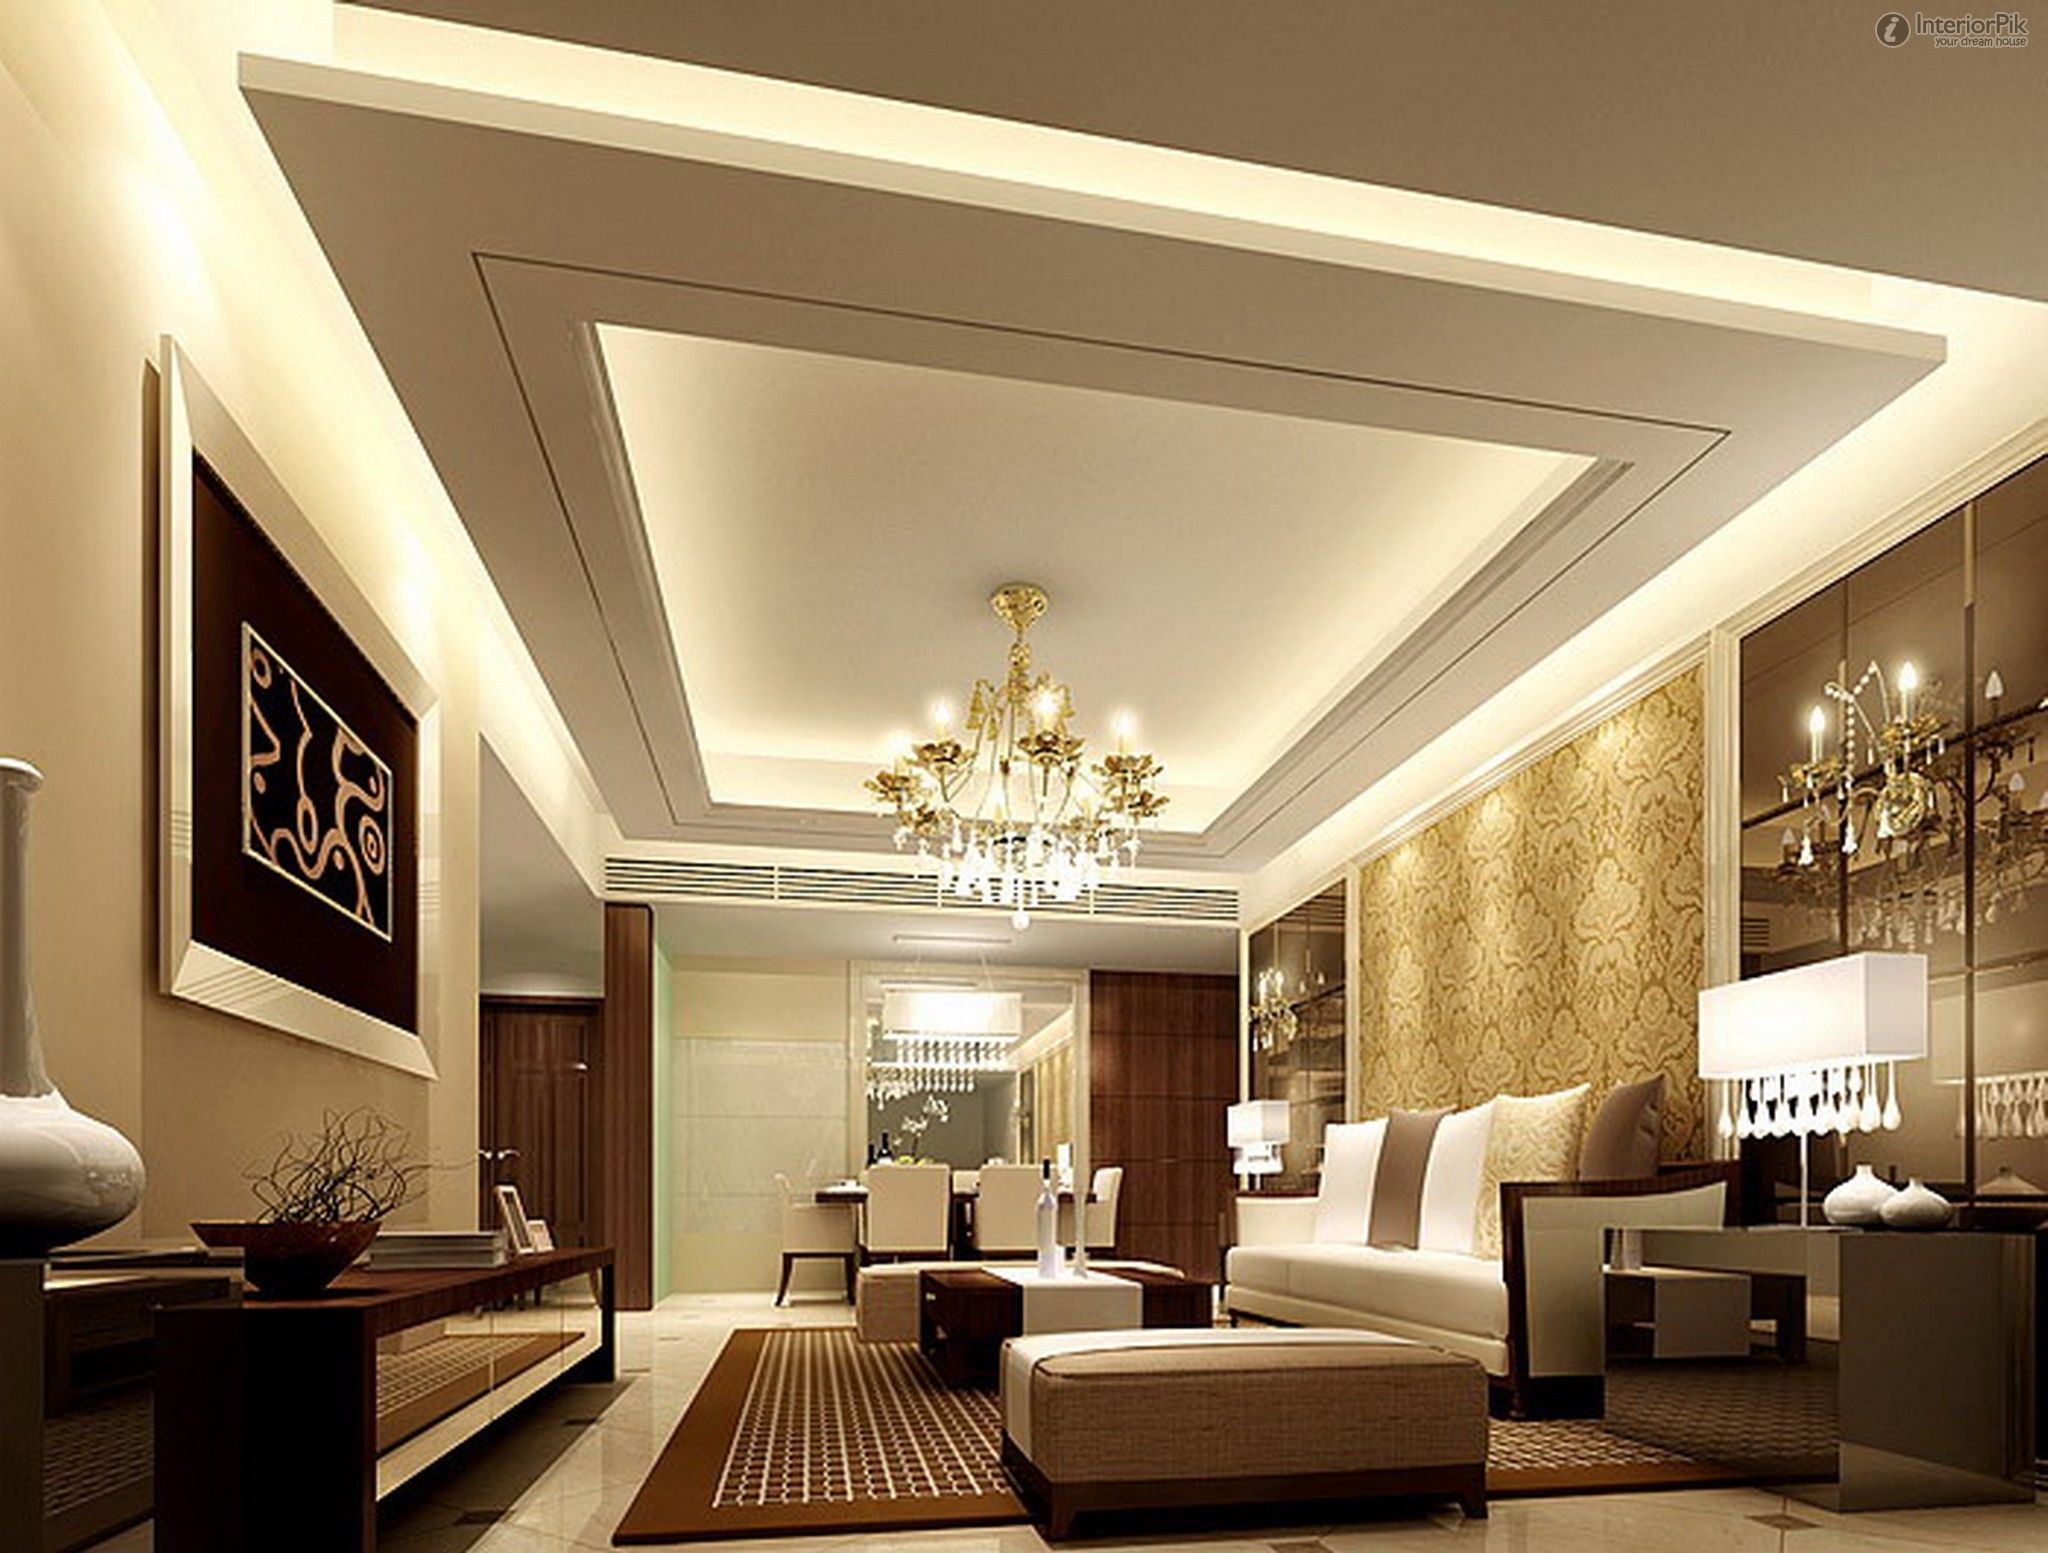 Simple False Ceiling Design For Small Living Room Storage Toys In Fresco Of Vaulted Ideas Interiors